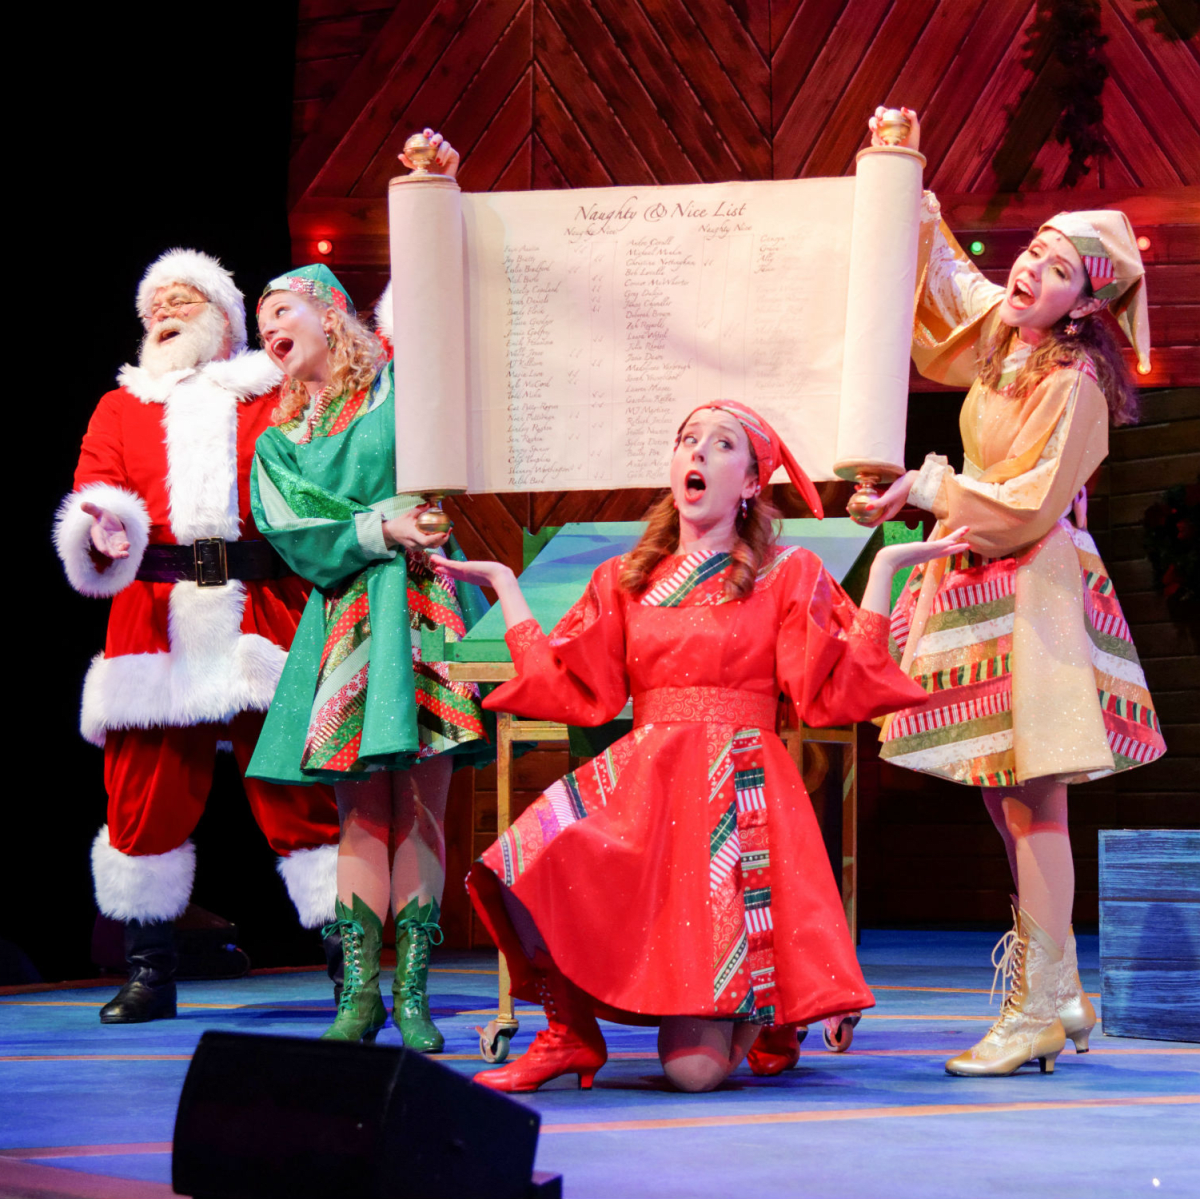 Casa Mañana presents Santa Claus: a New Musical